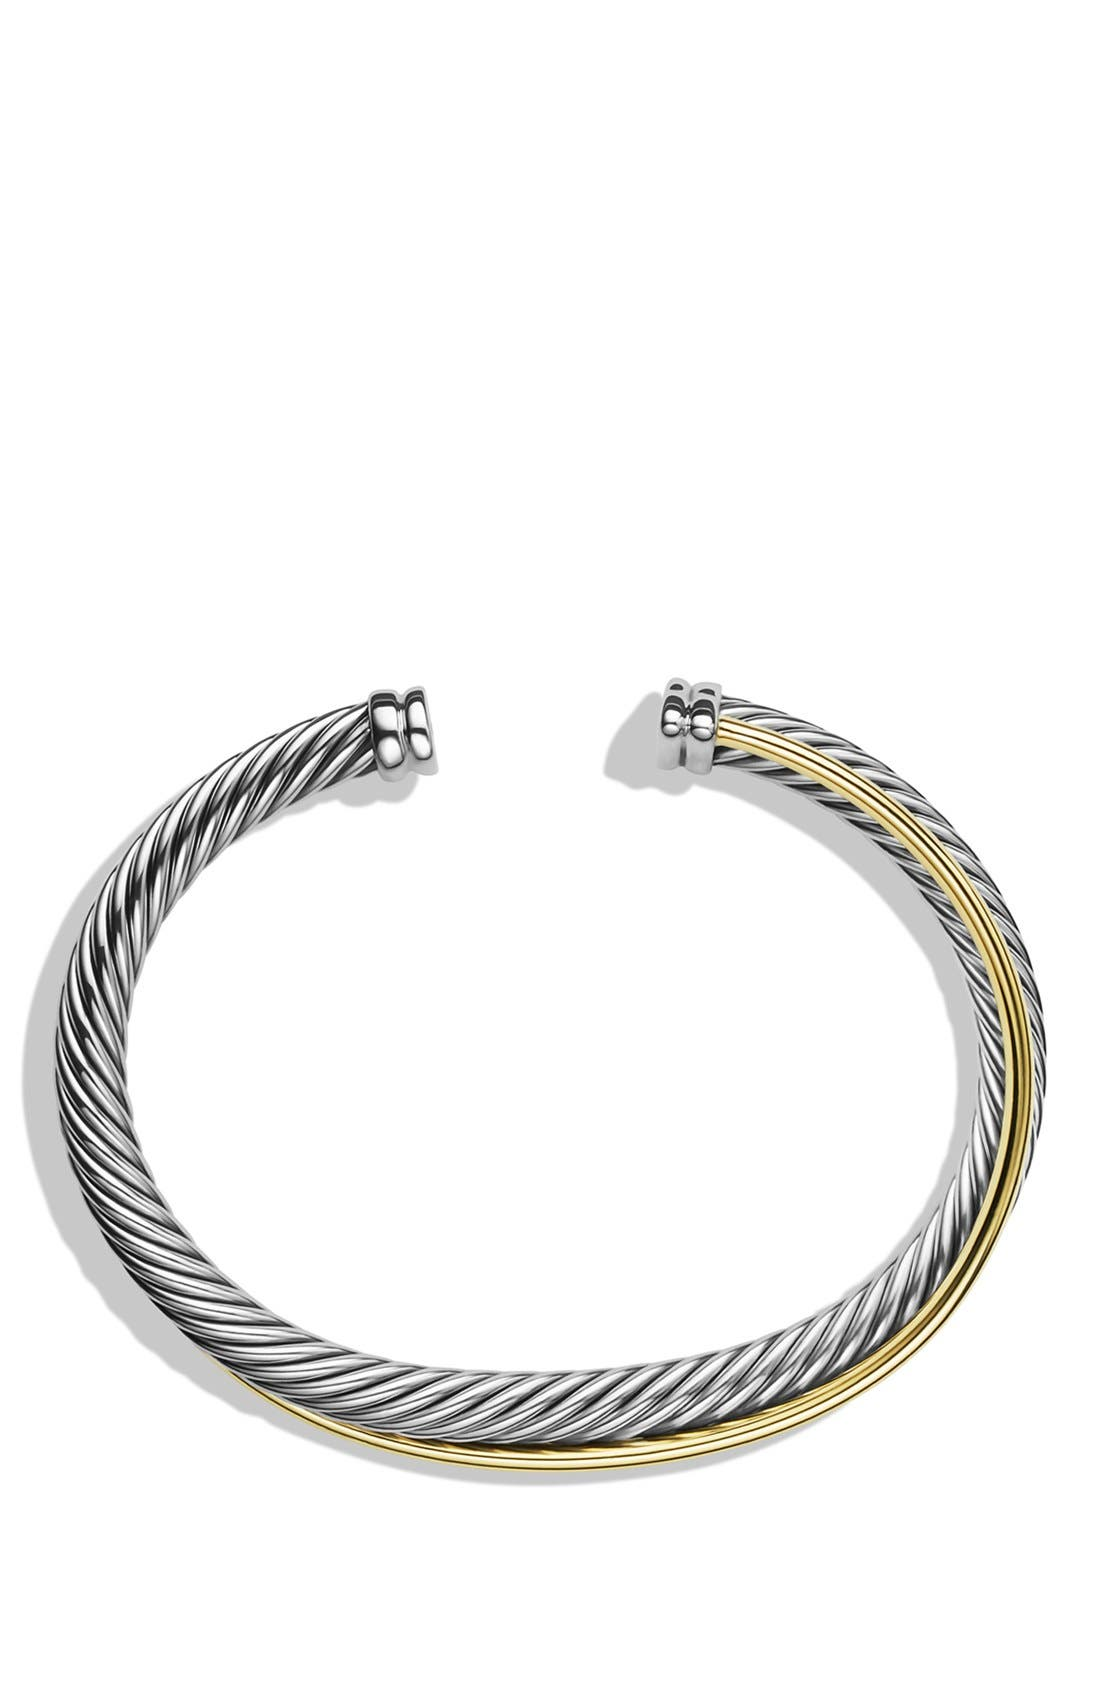 Alternate Image 2  - David Yurman 'Crossover' Cuff with Gold